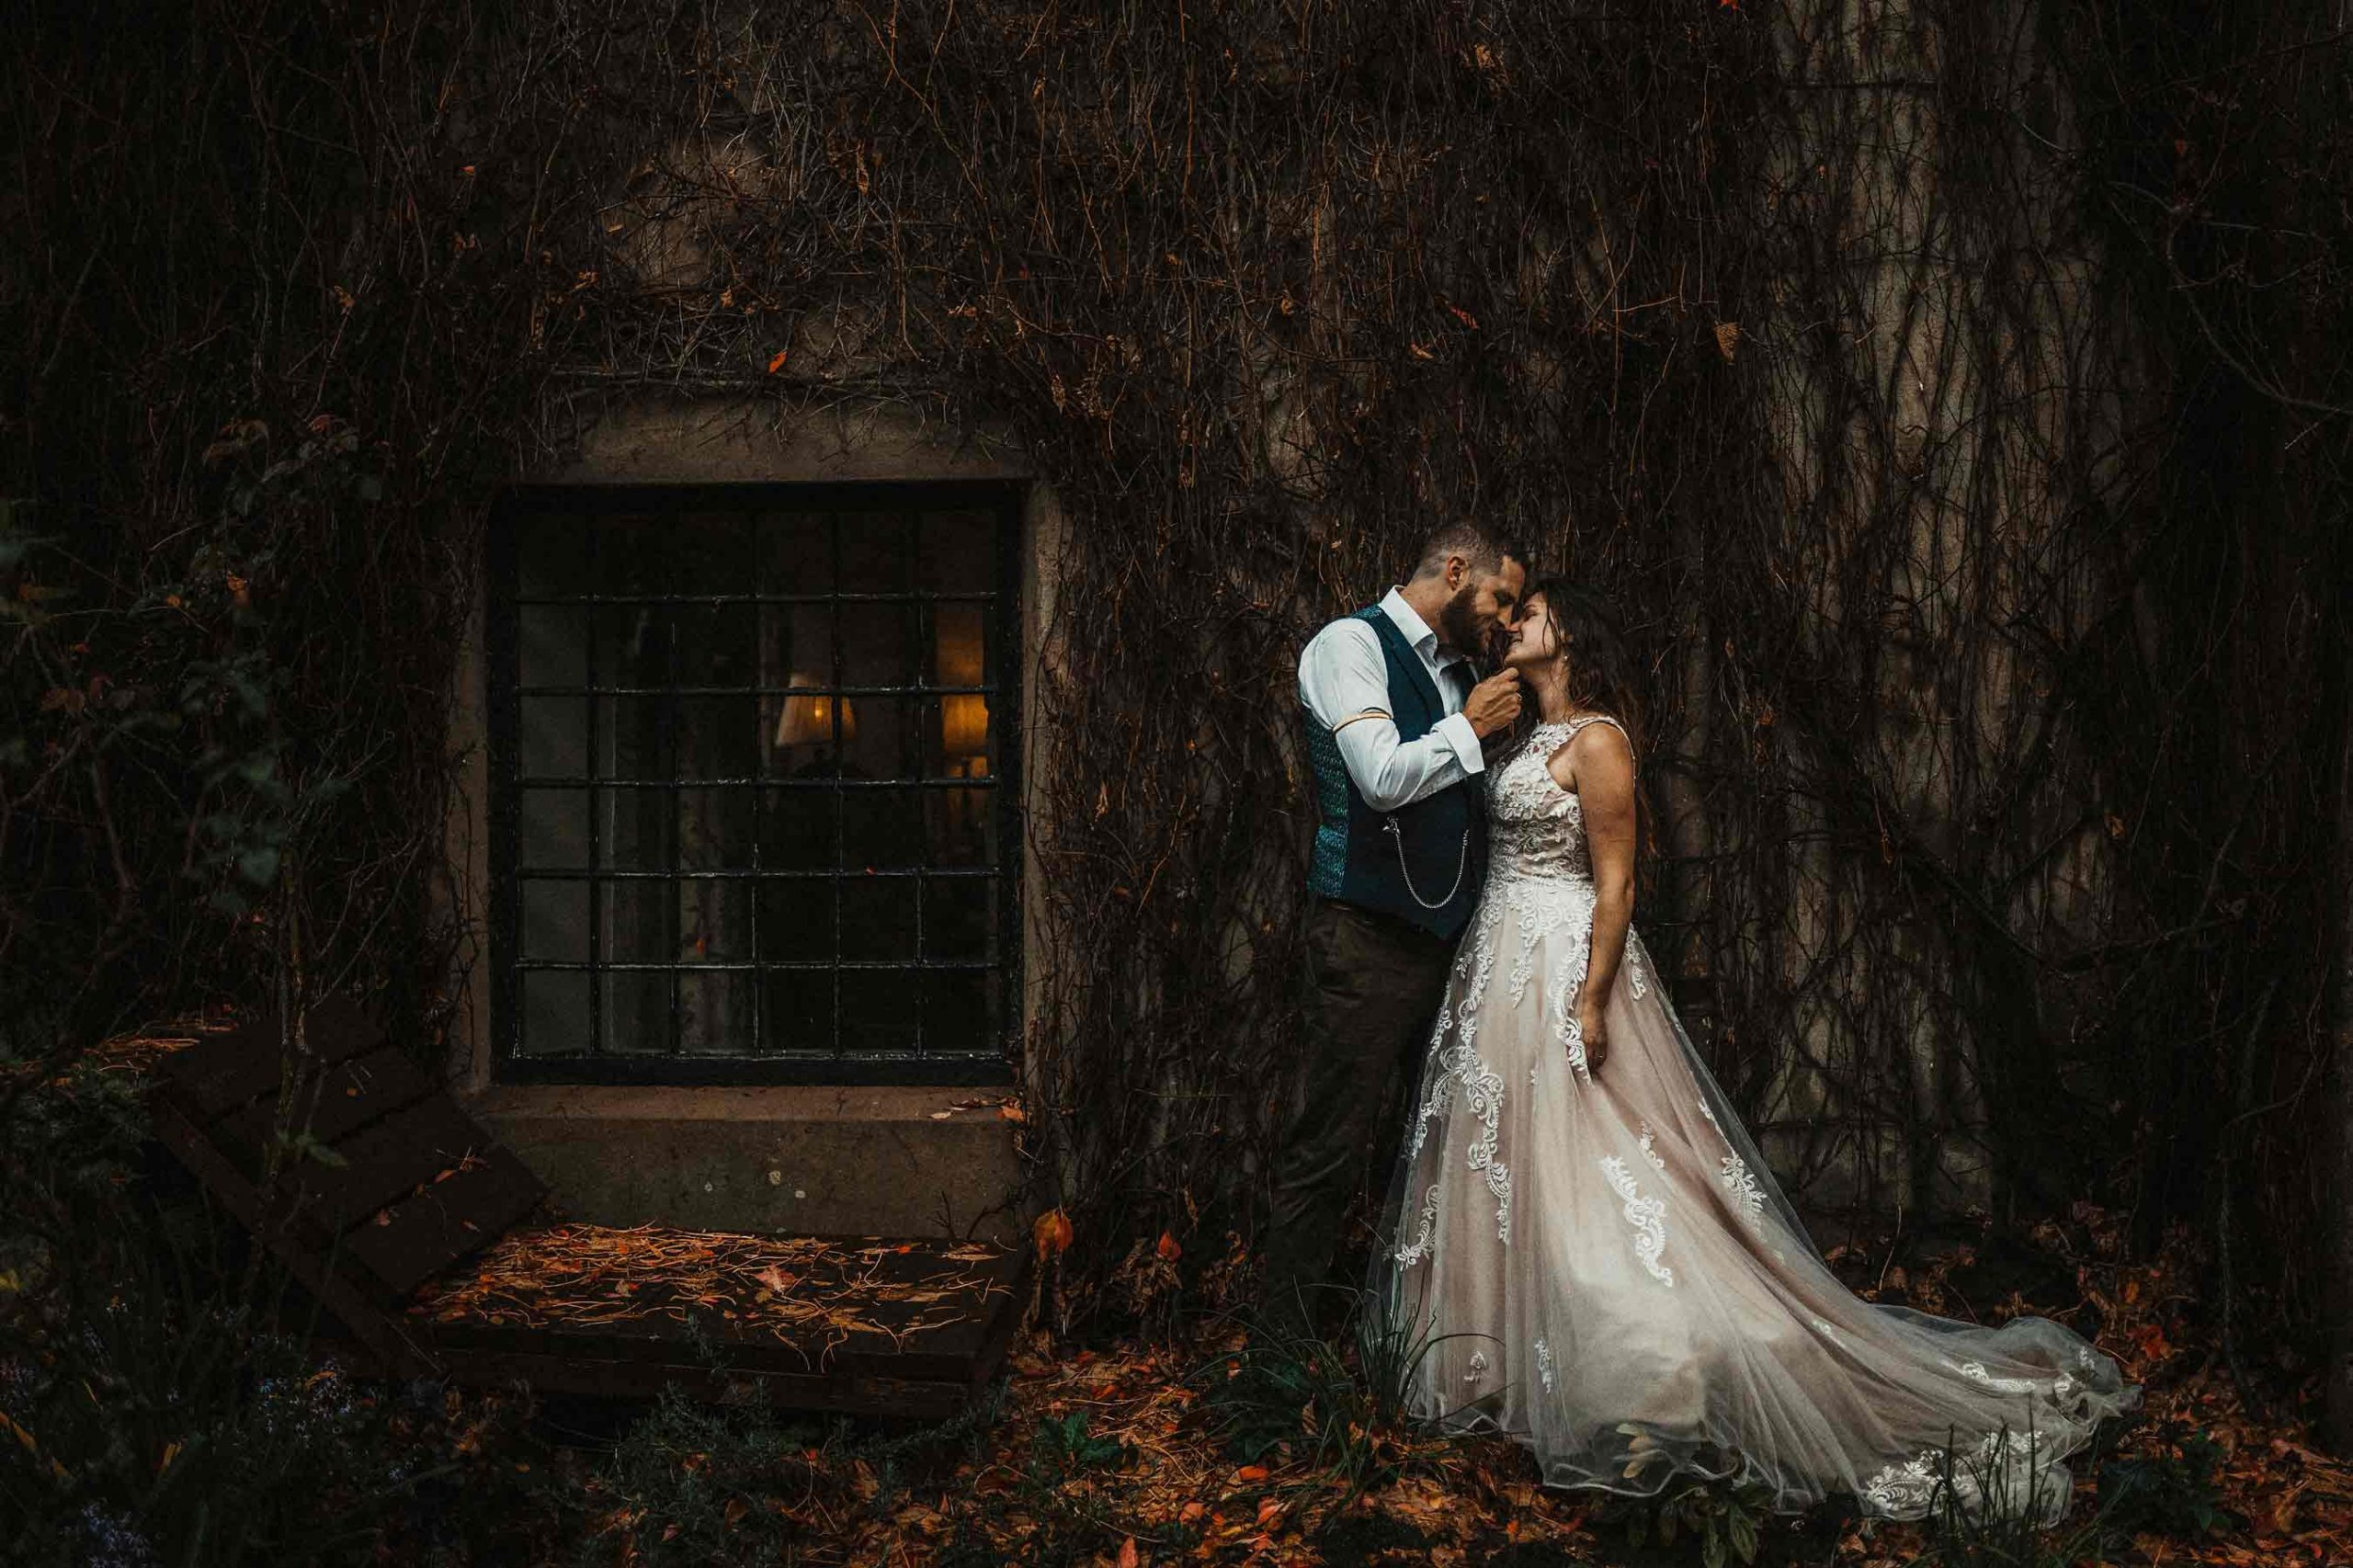 Bride and groom with a rustic background - wedding photographer and videographer Chepstow